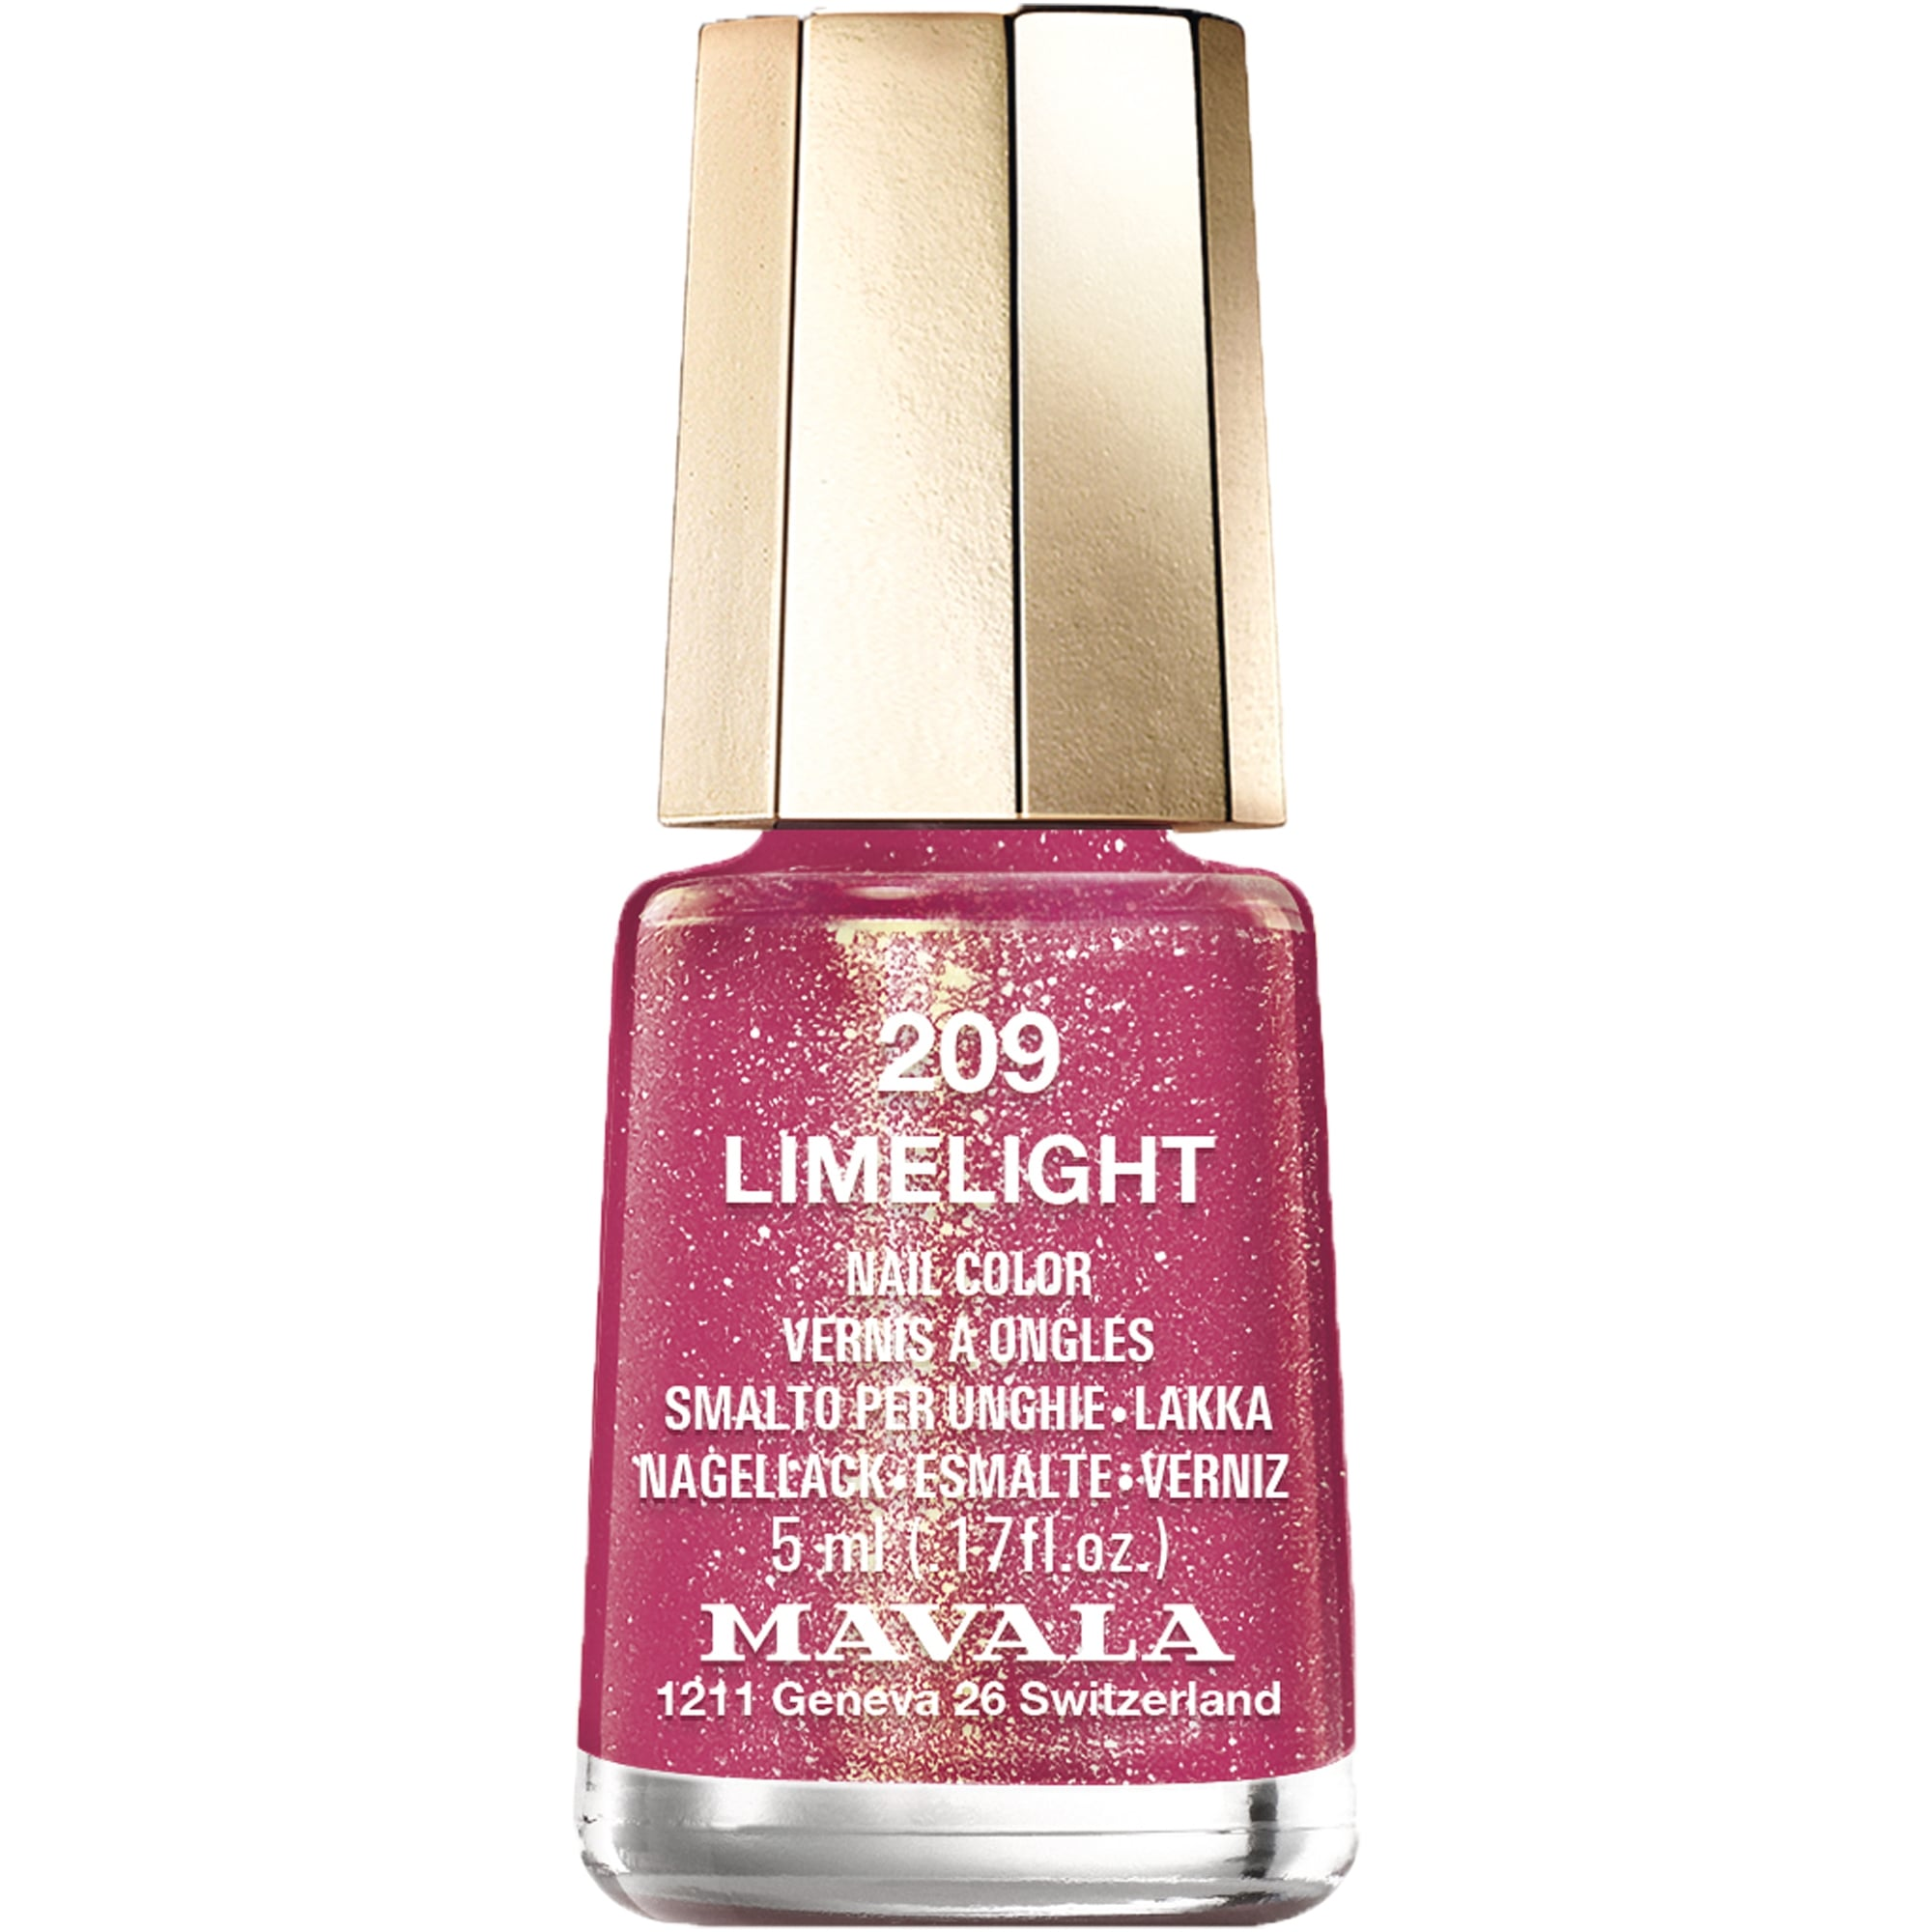 cheek luminizer get nail light beauty pink jeans skinny the ultra real for win today your very and tint a polish girly chance up of cat bottle to it eyes lit in you have make own